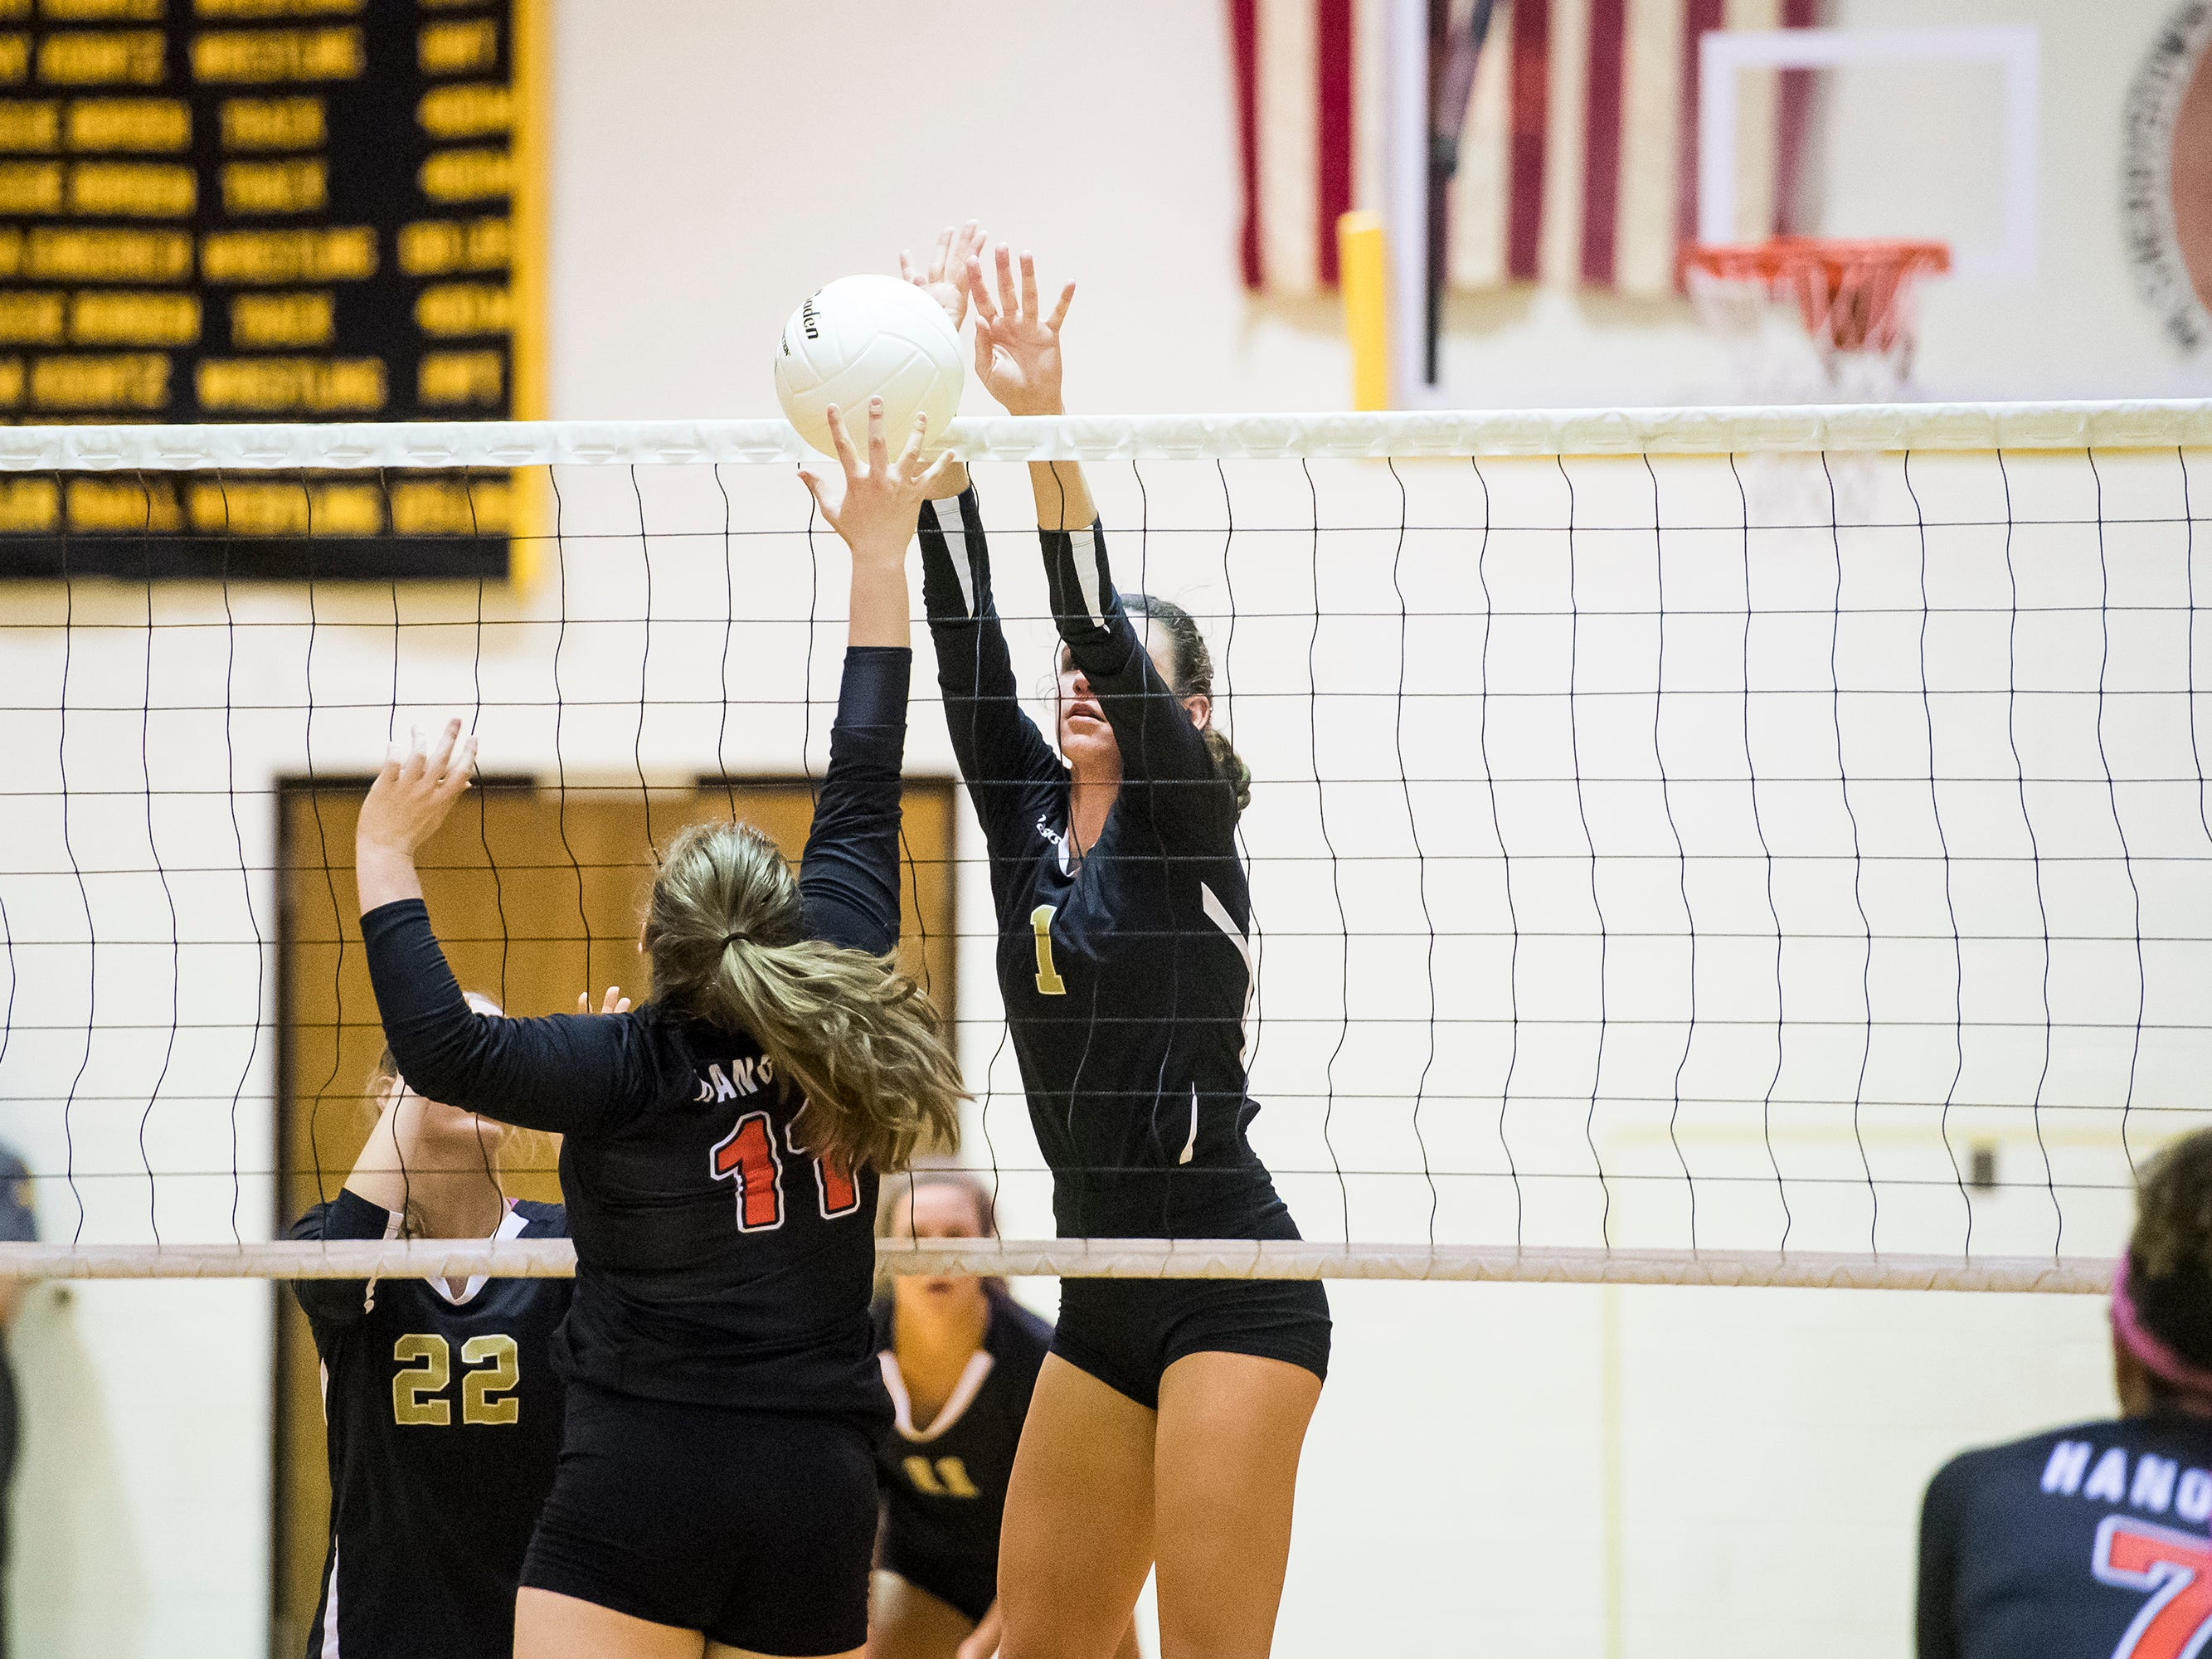 Delone Catholic's Maddie Clabaugh (1) blocks a shot from Hanover's Savannah Disney on Tuesday, September 18, 2018. The Squirettes swept the Hawkettes in three sets; 25-16, 25-19, 25-14.